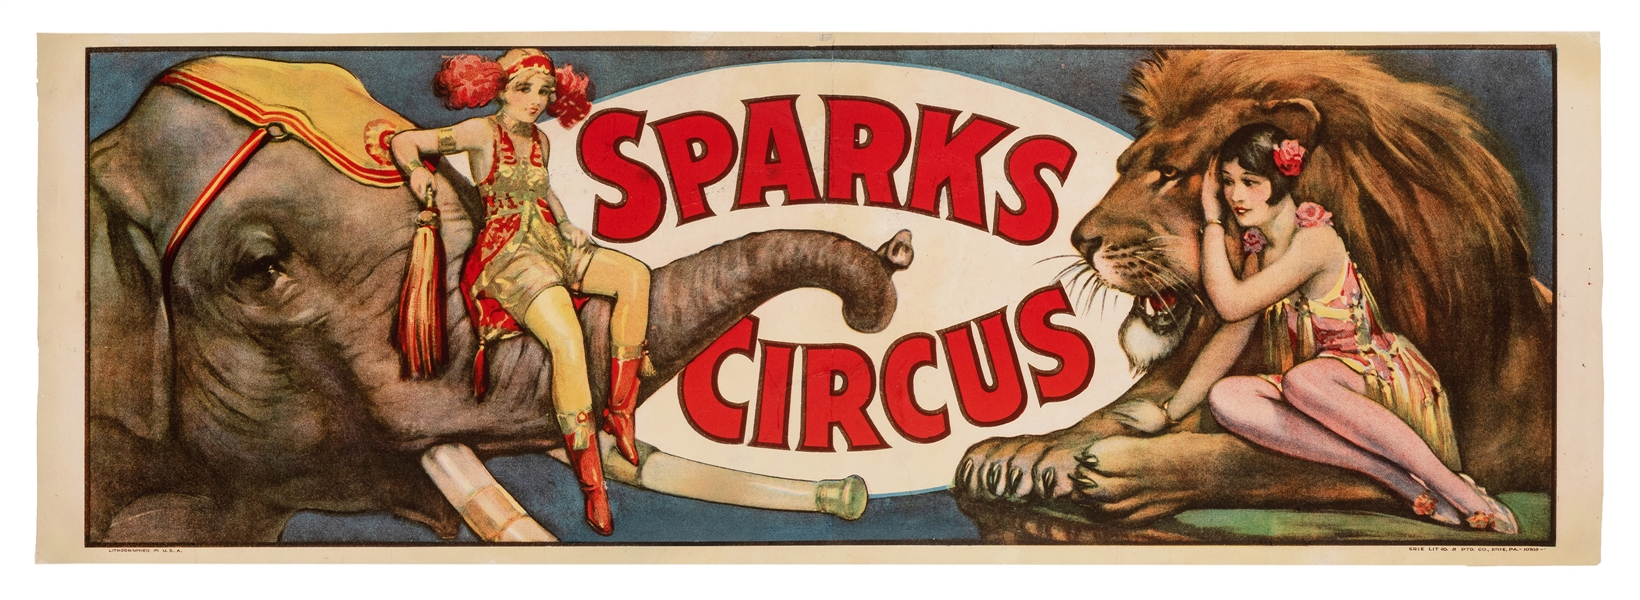 Sparks Circus.